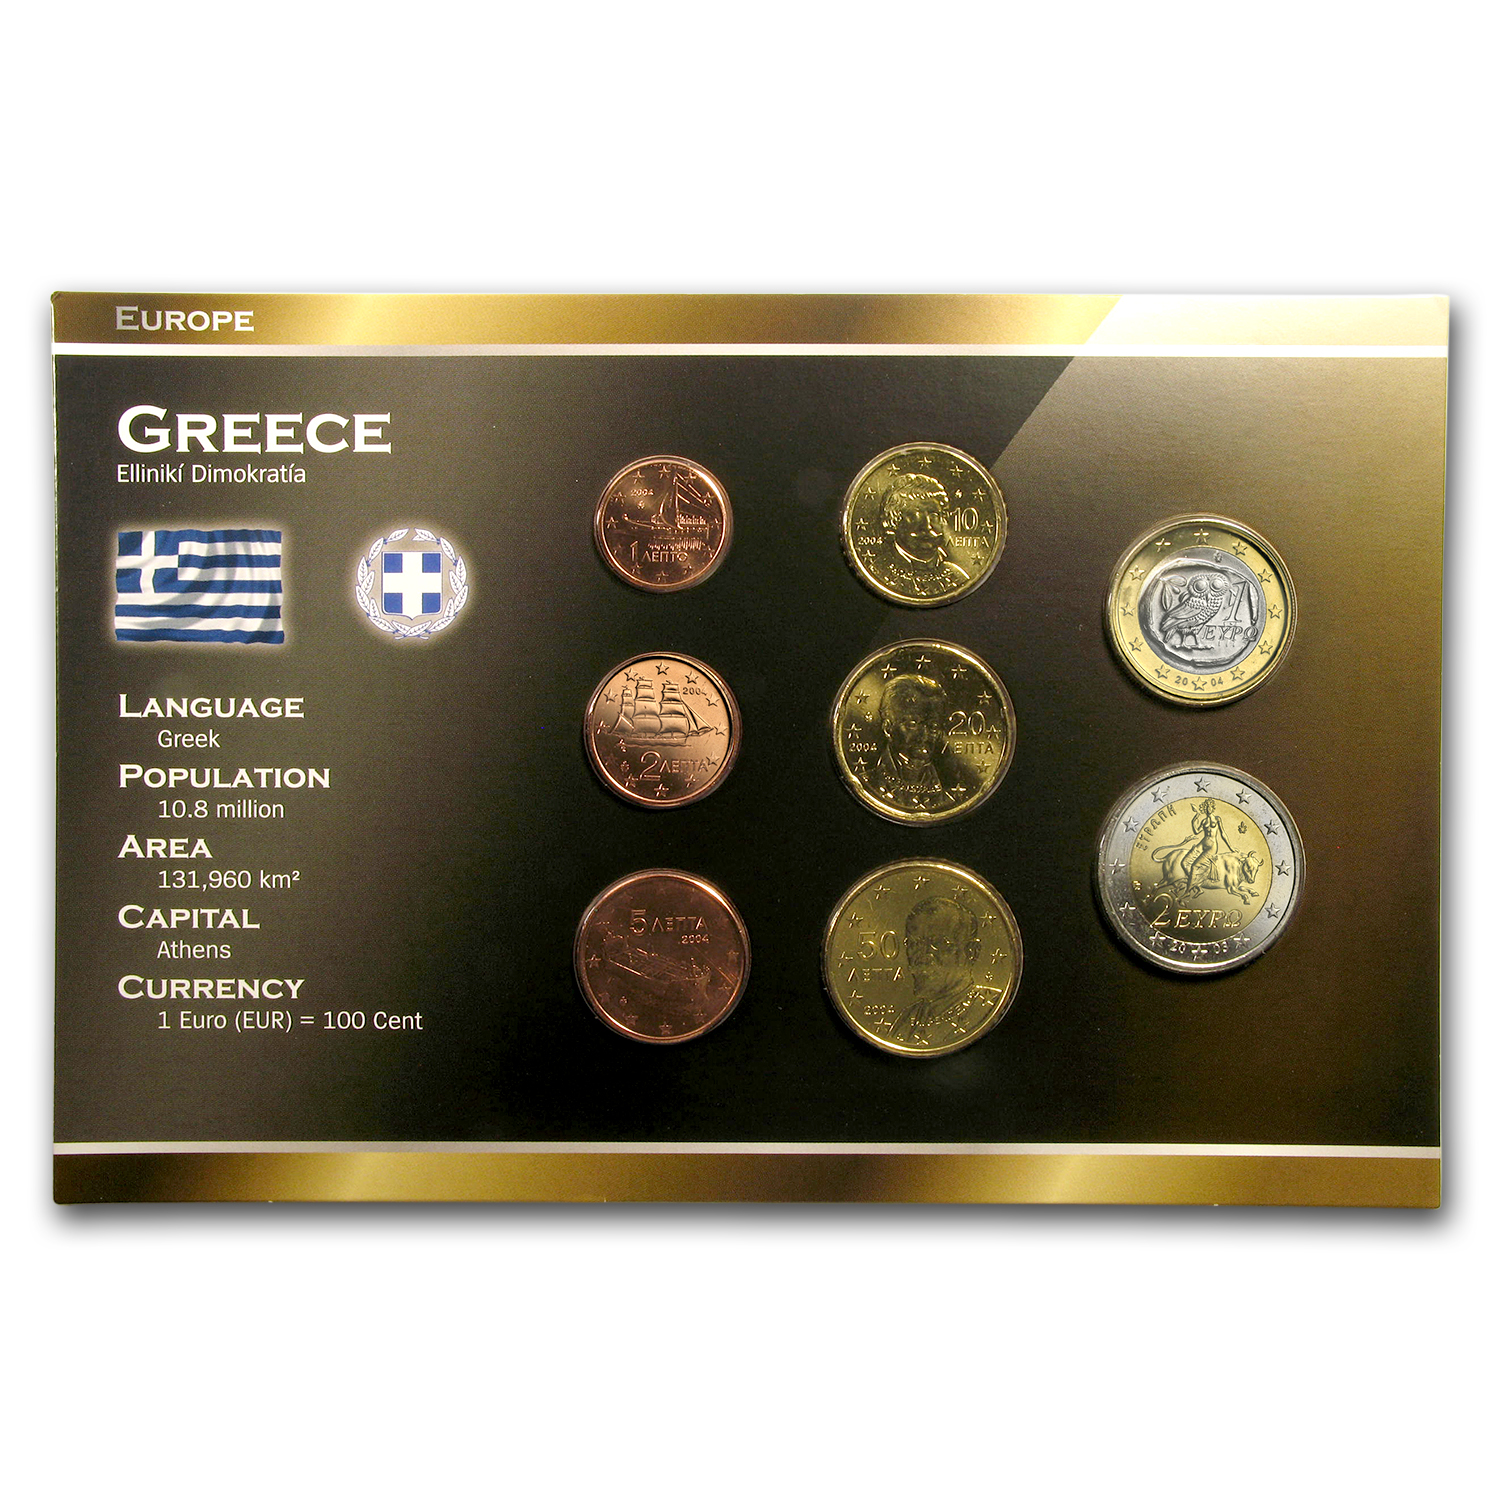 2002 Greece 8-Coin Euro Set